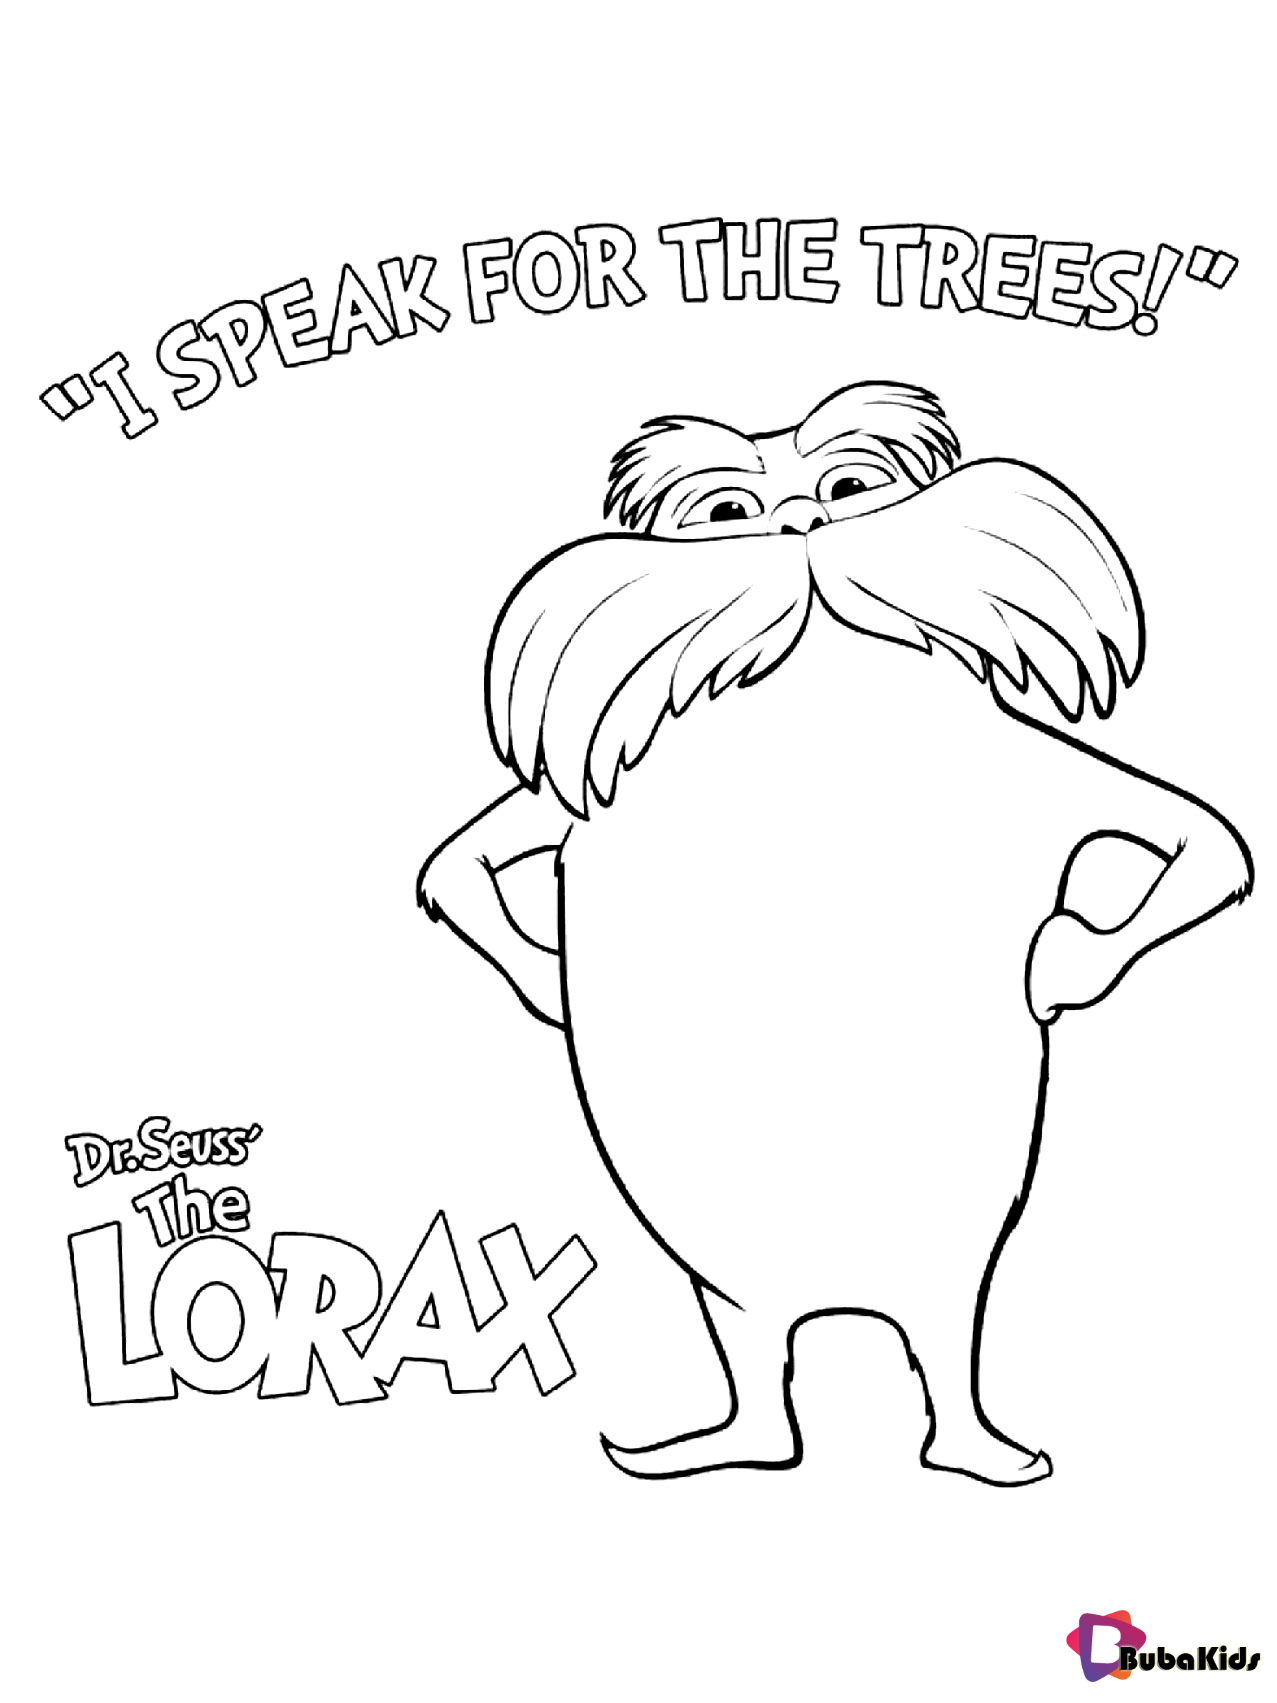 Dr seuss The Lorax I speak for the trees coloring pages in